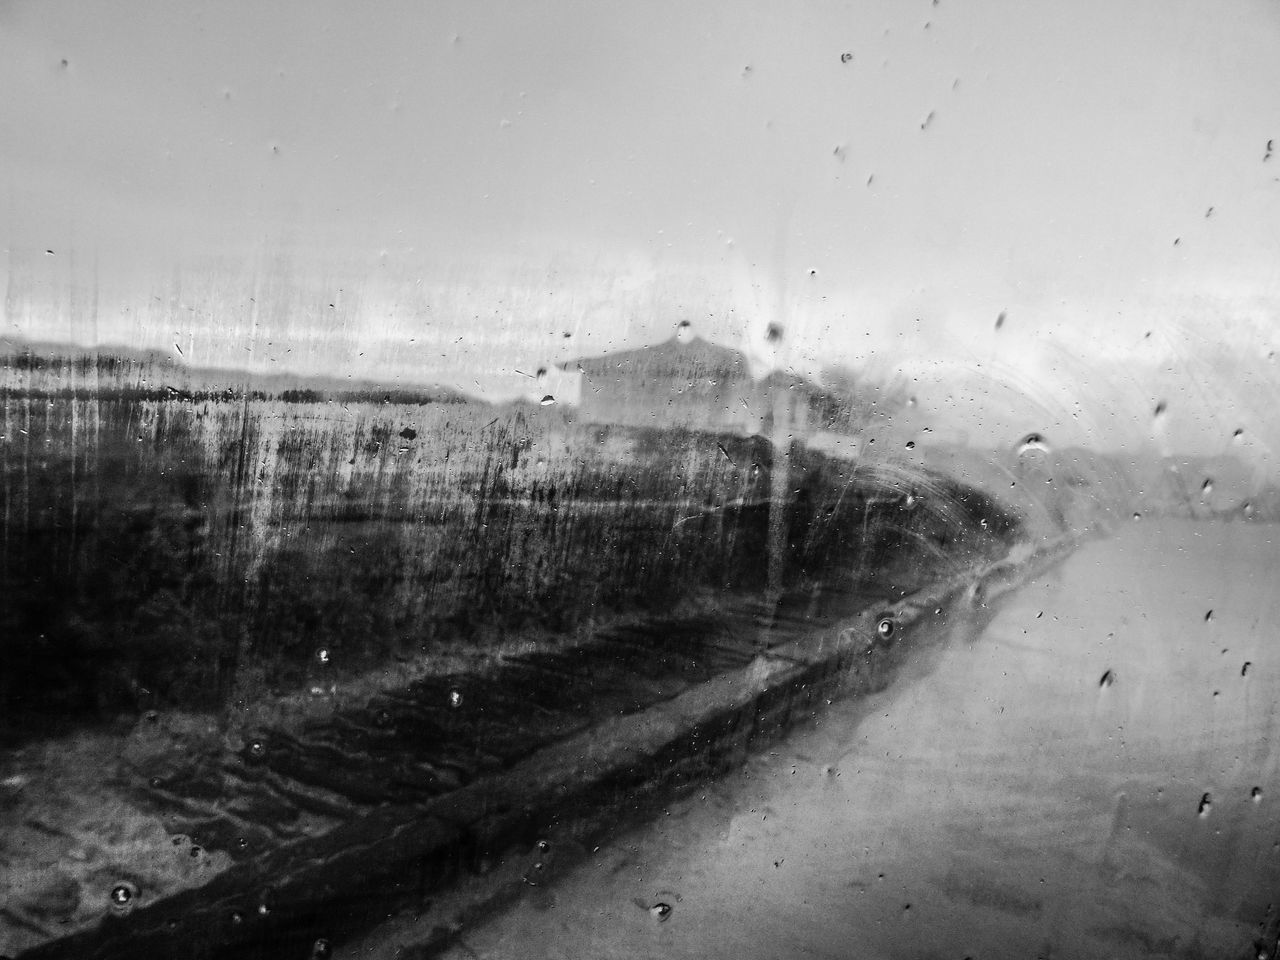 Rain Window Weather RainDrop Water Abstract Winter No People Black And White Black & White Rany Day Rainy Days Urban Exploration